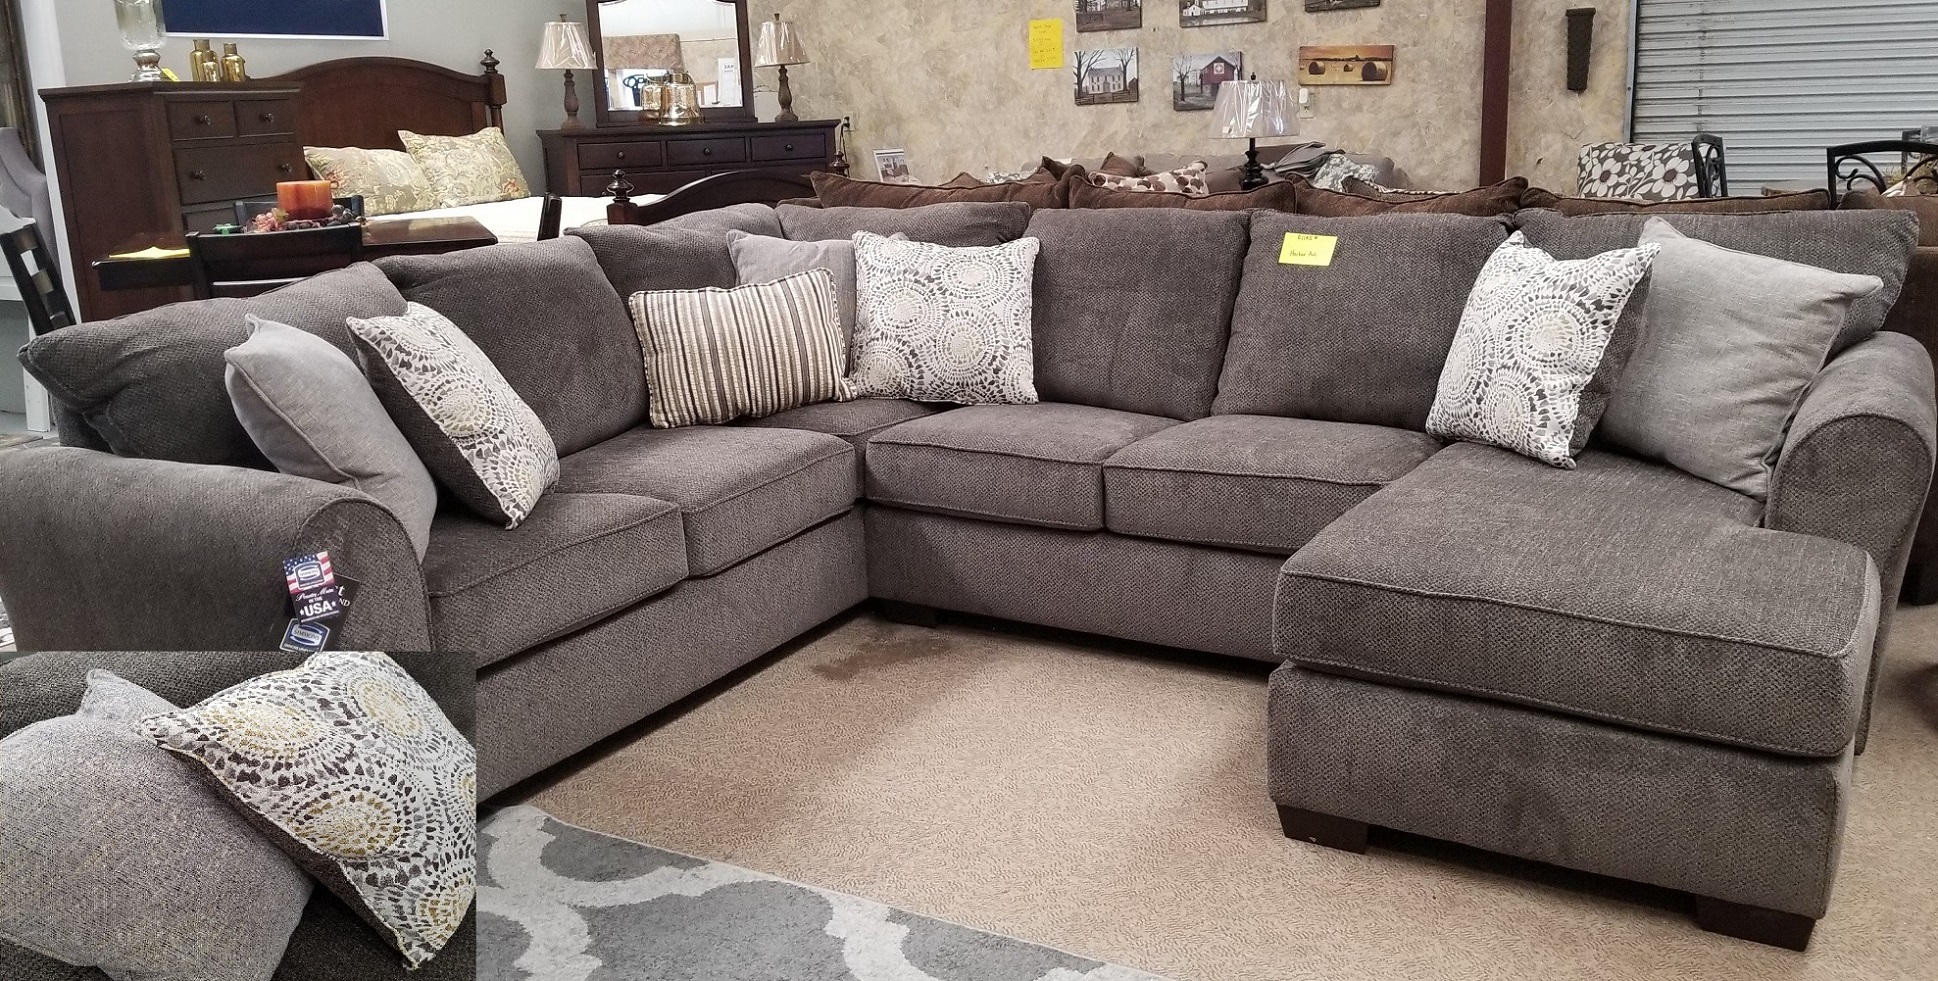 Harlow Ash Sectional w/ Chaise